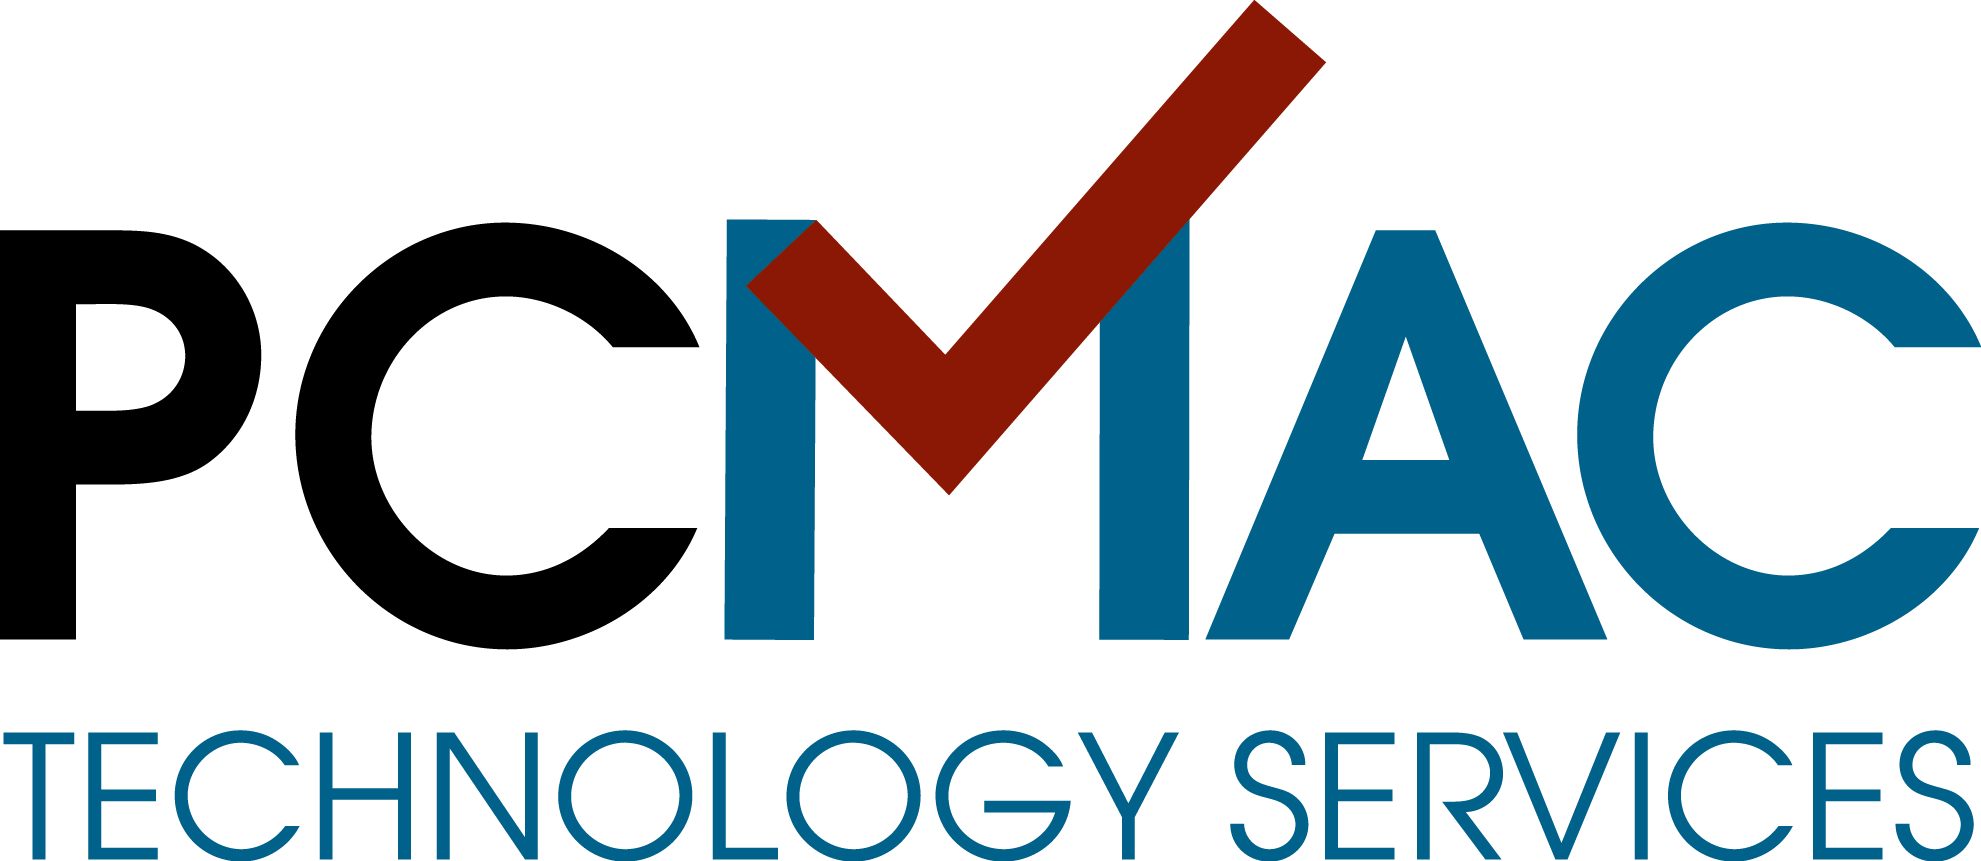 PCMAC Technology Services